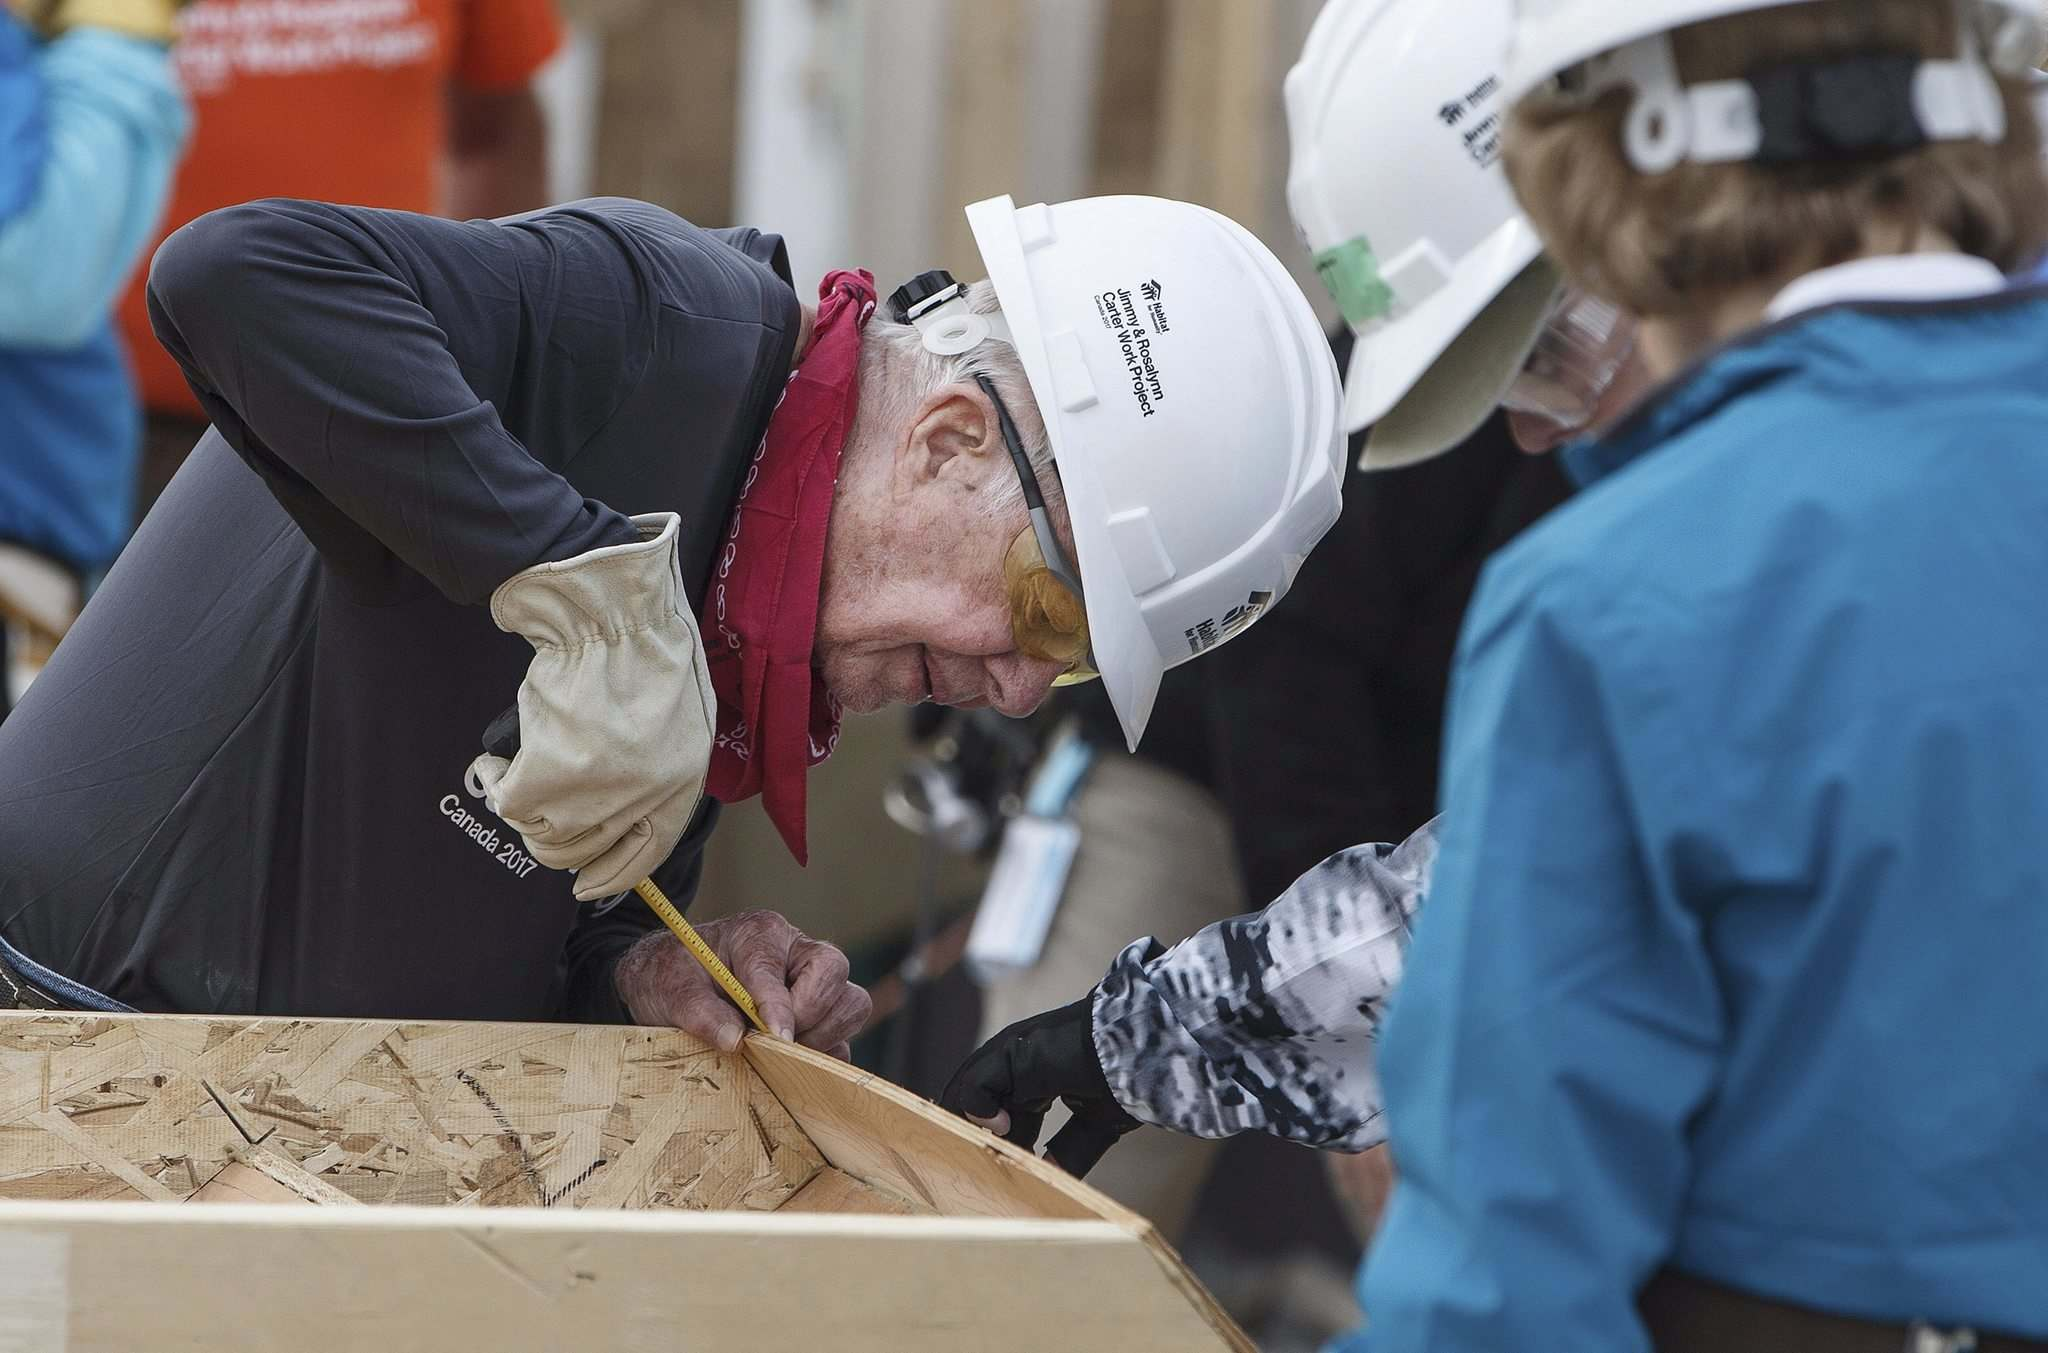 Jimmy Carter collapsed at Habitat Build